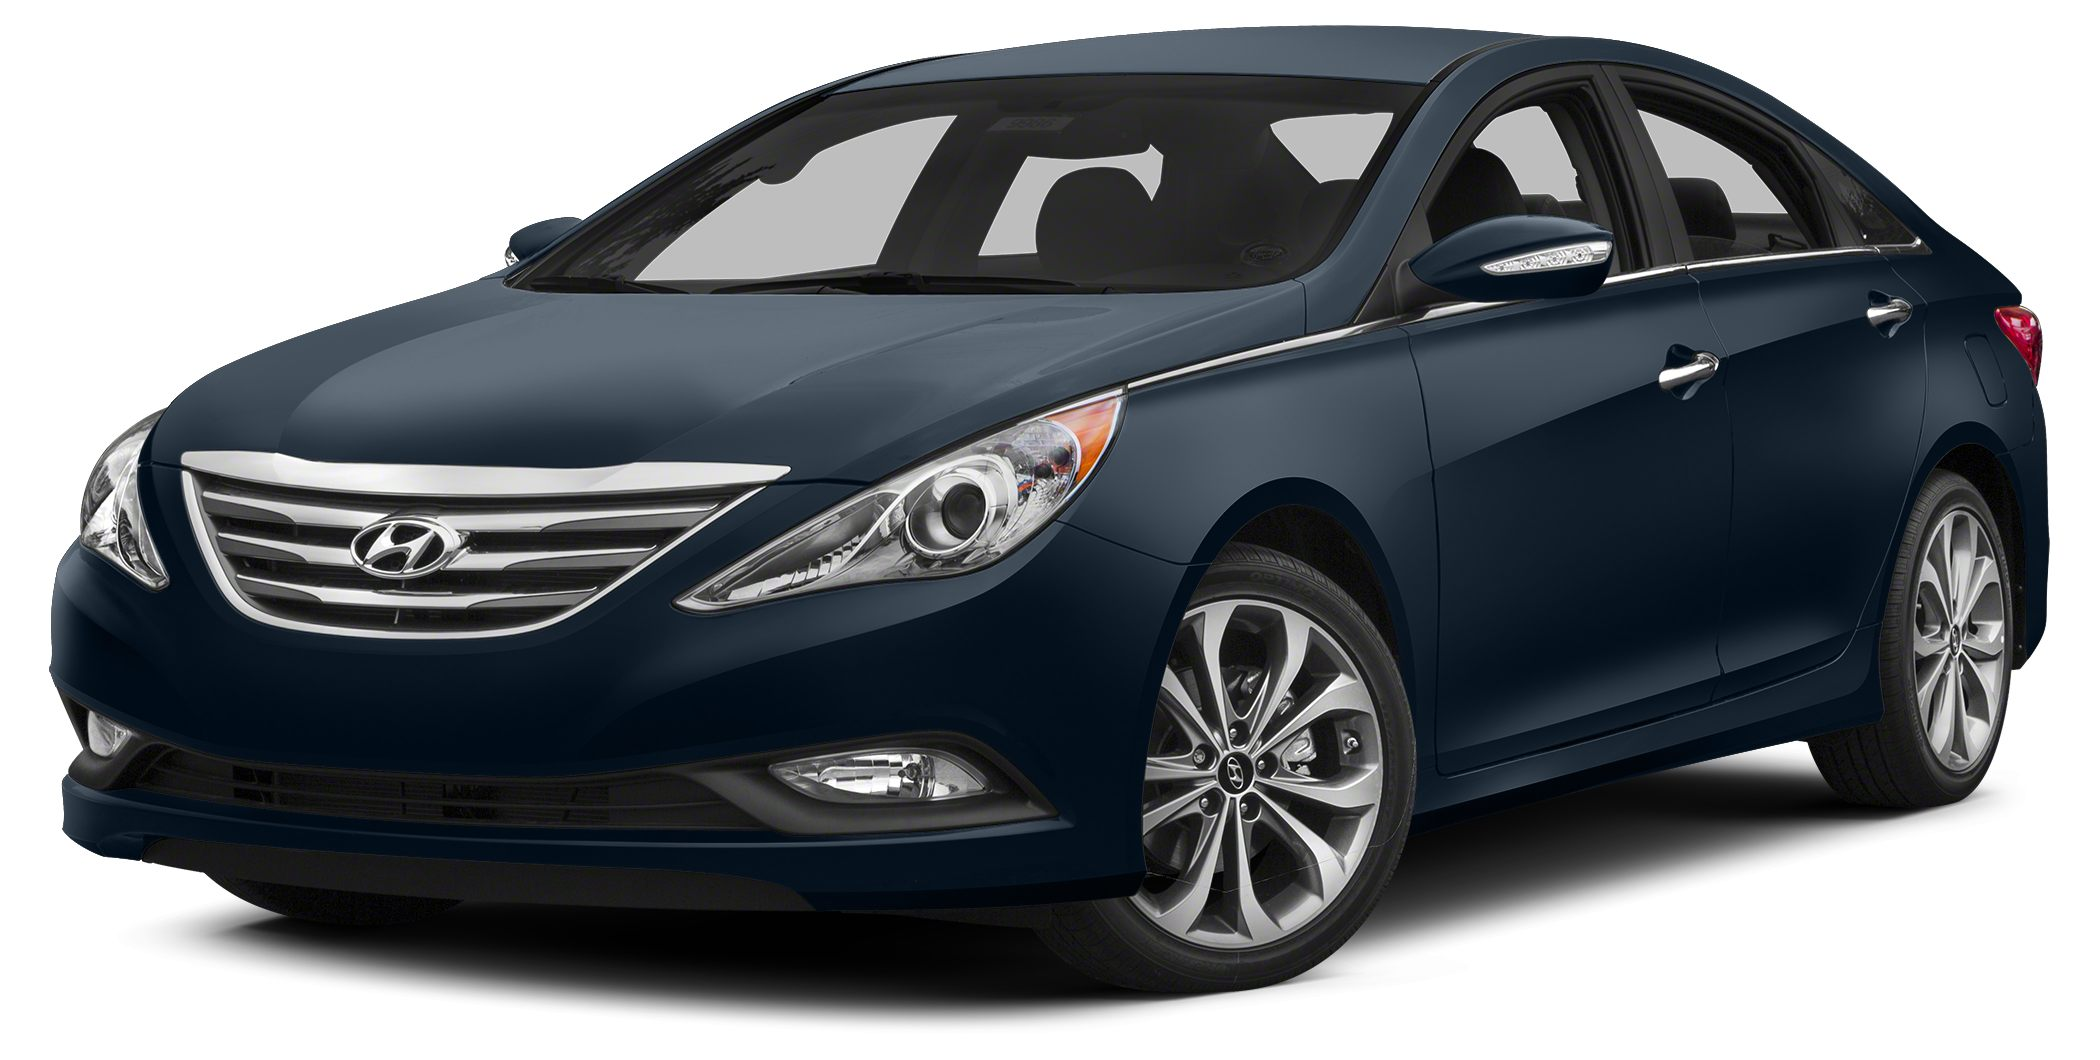 2014 Hyundai Sonata GLS AutoMax Pre-owned is a BBB Accredited Business with an A Rating We offer